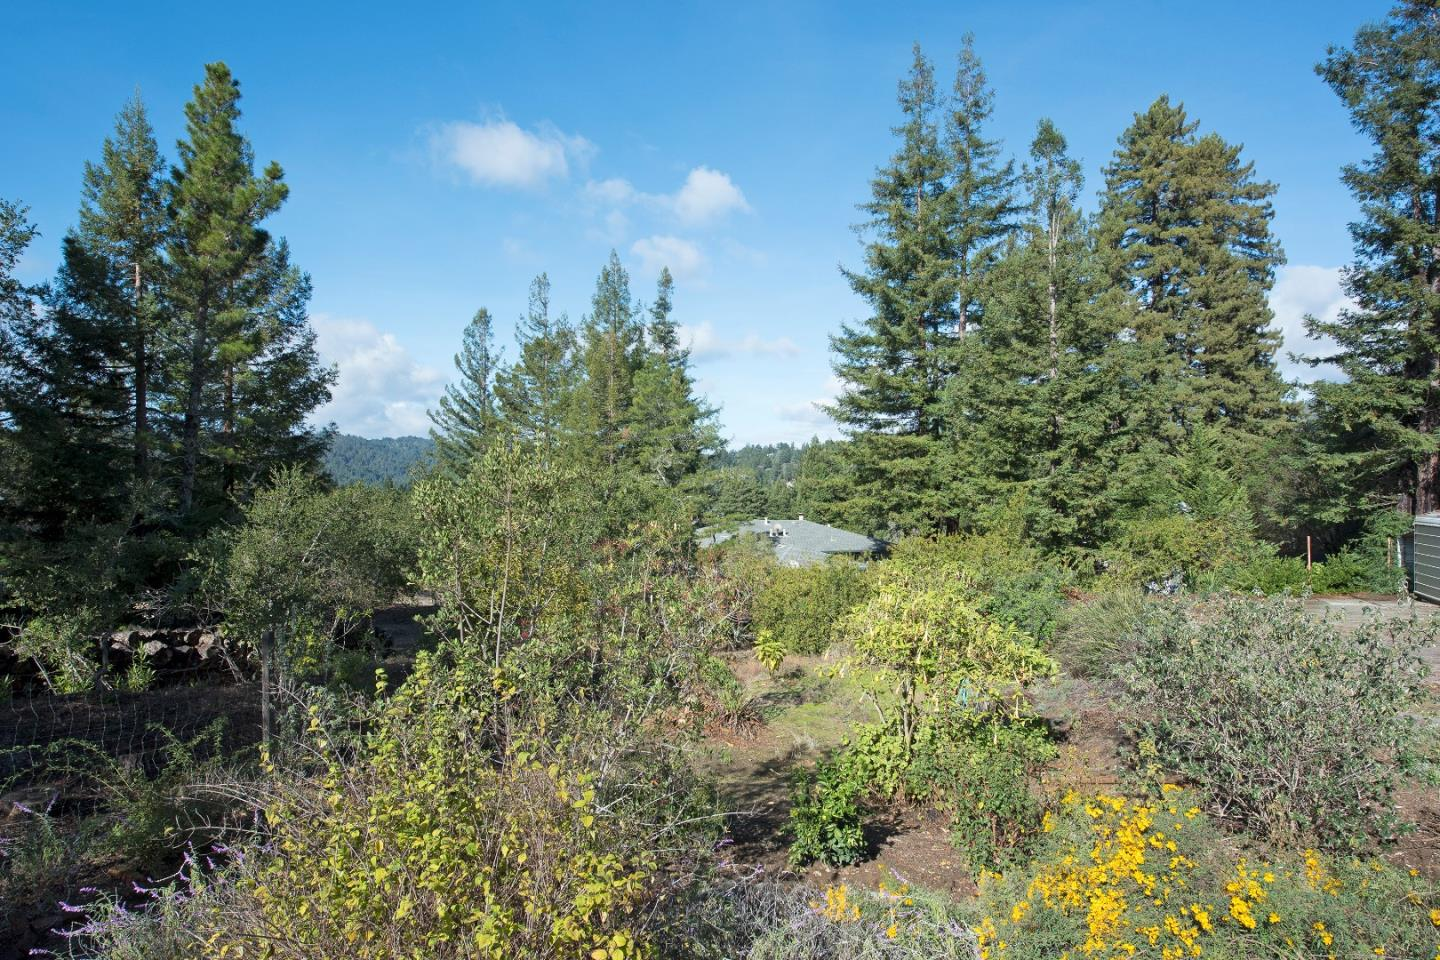 24925 Soquel San Jose Road Los Gatos, CA 95033 - MLS #: ML81732616